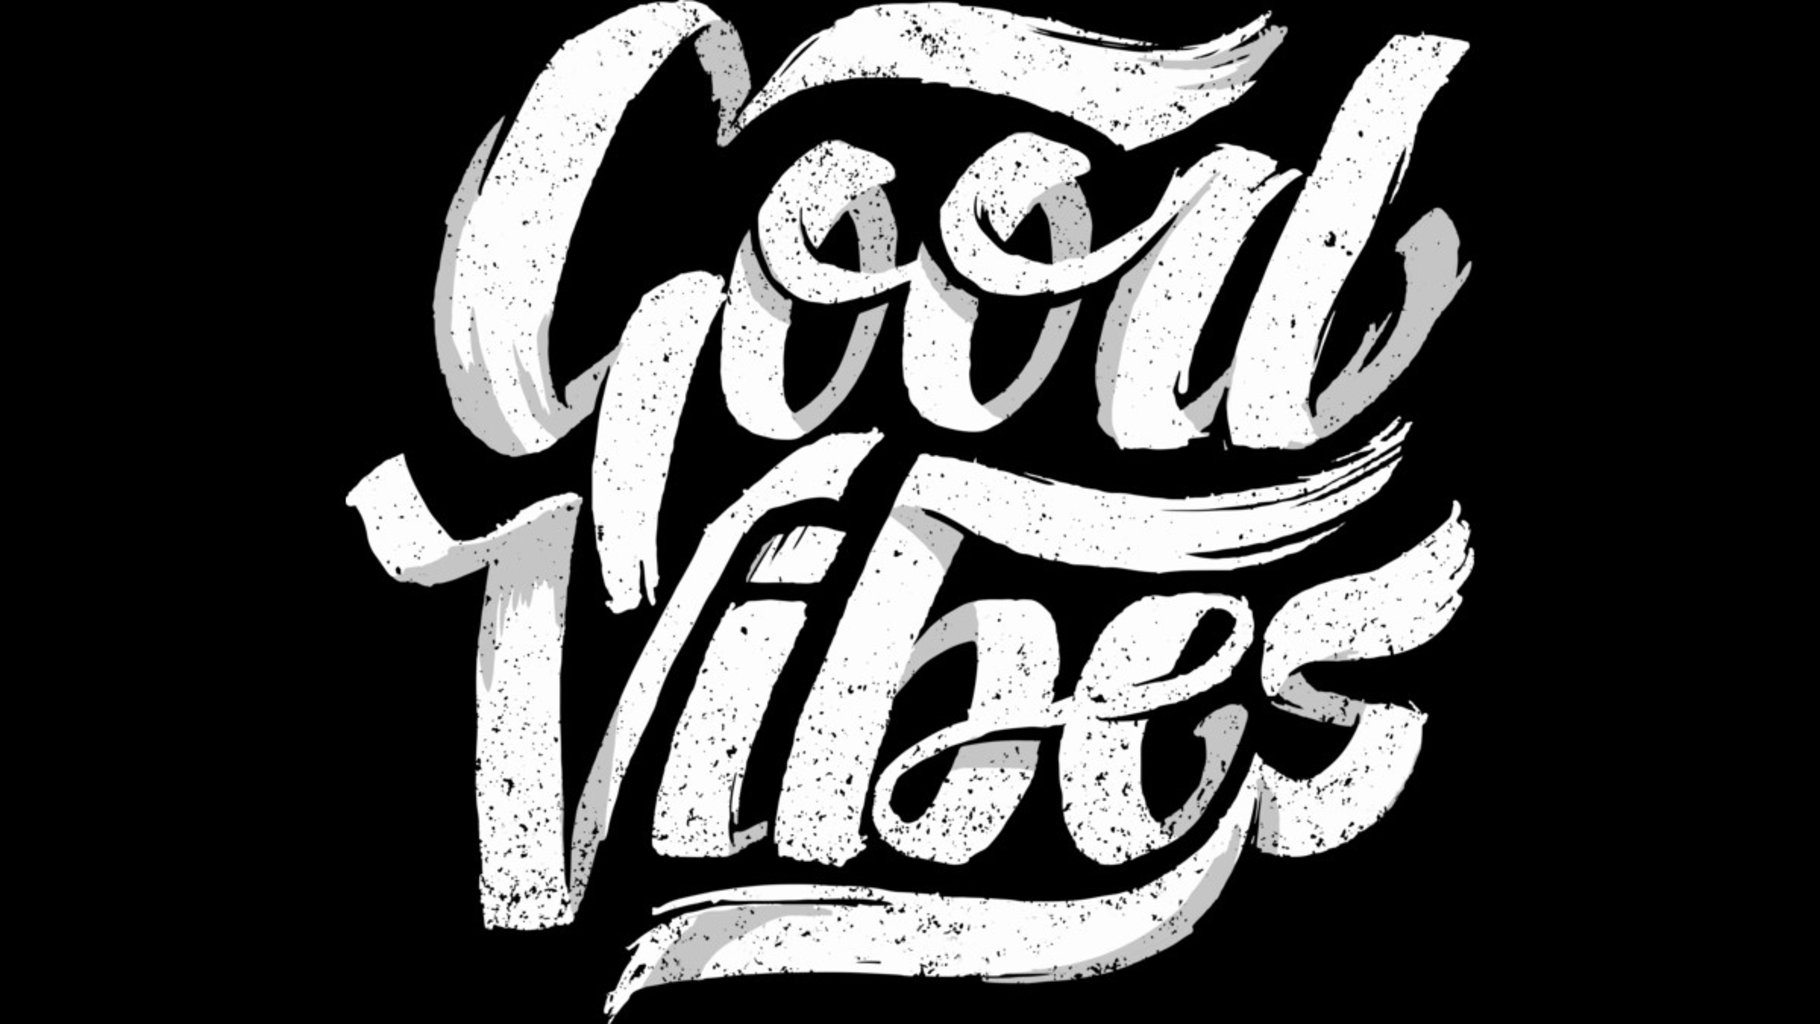 Design by Humans: Good Vibes